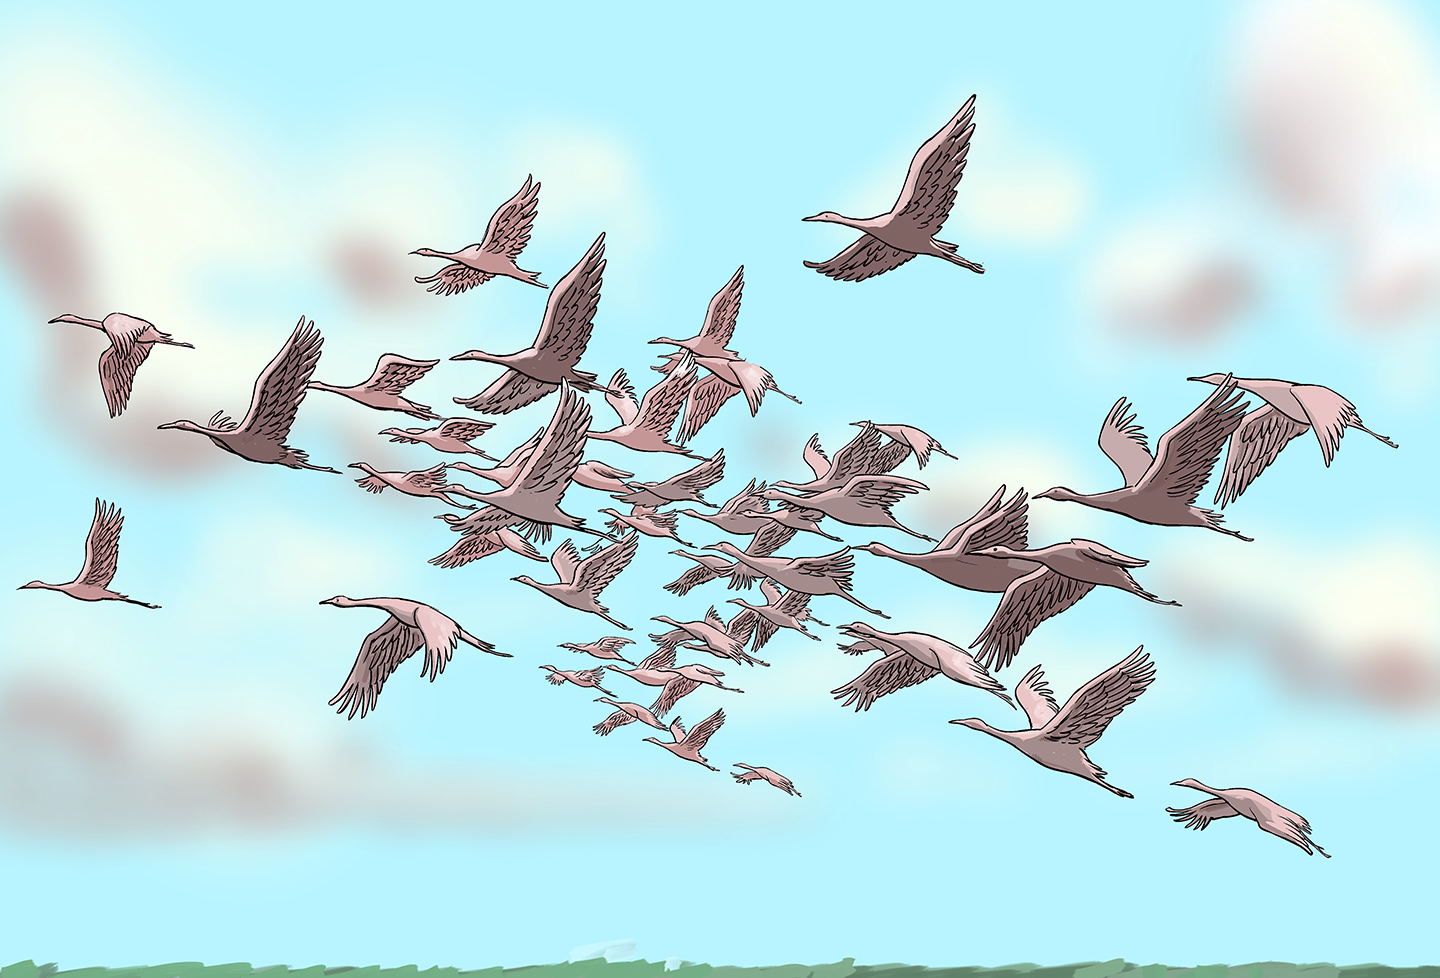 A large flock of identical flying cranes.